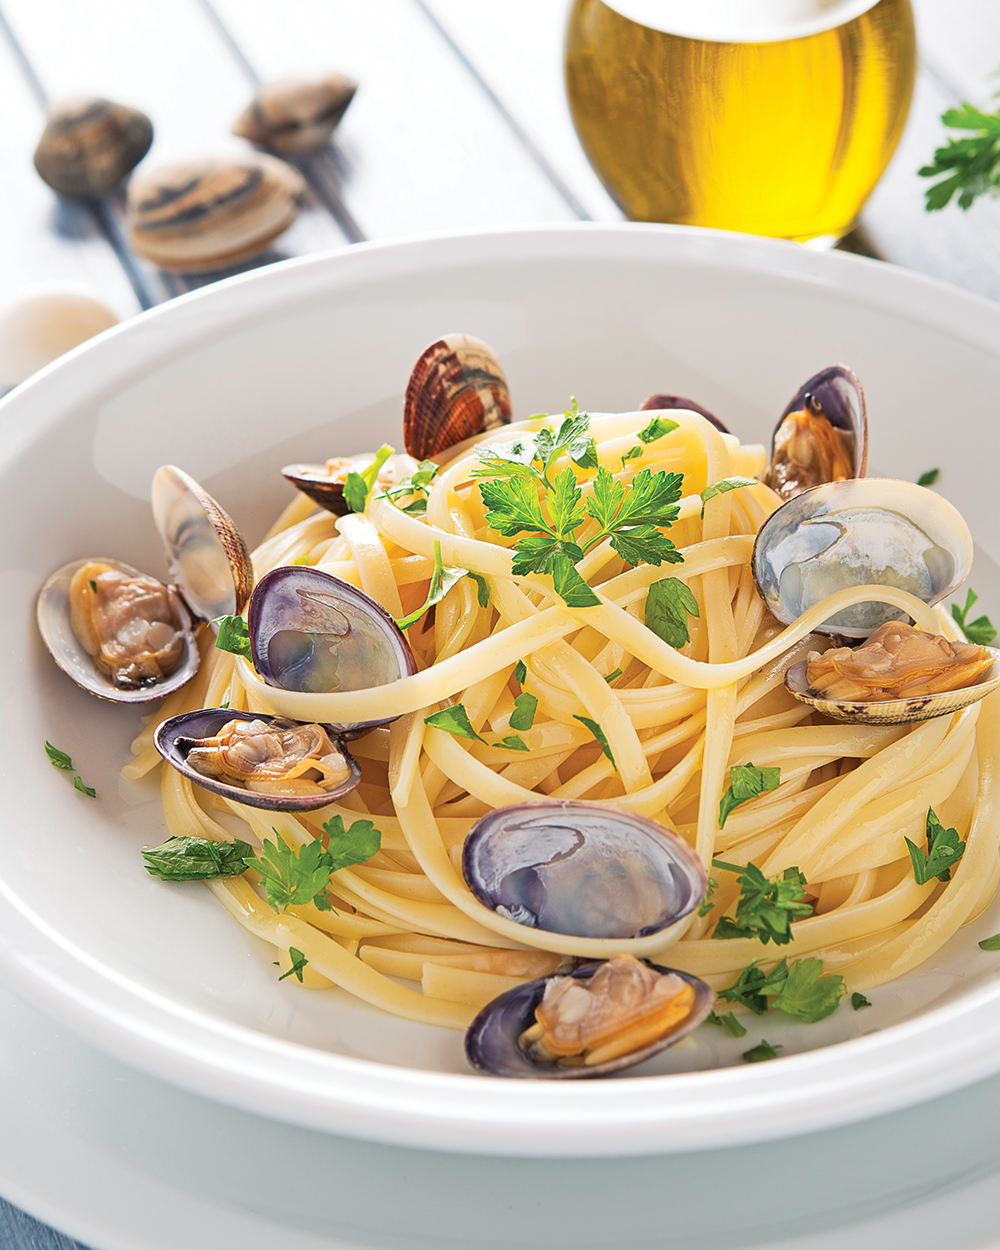 Linguine with Fresh Clams, Parsley, and Lemon